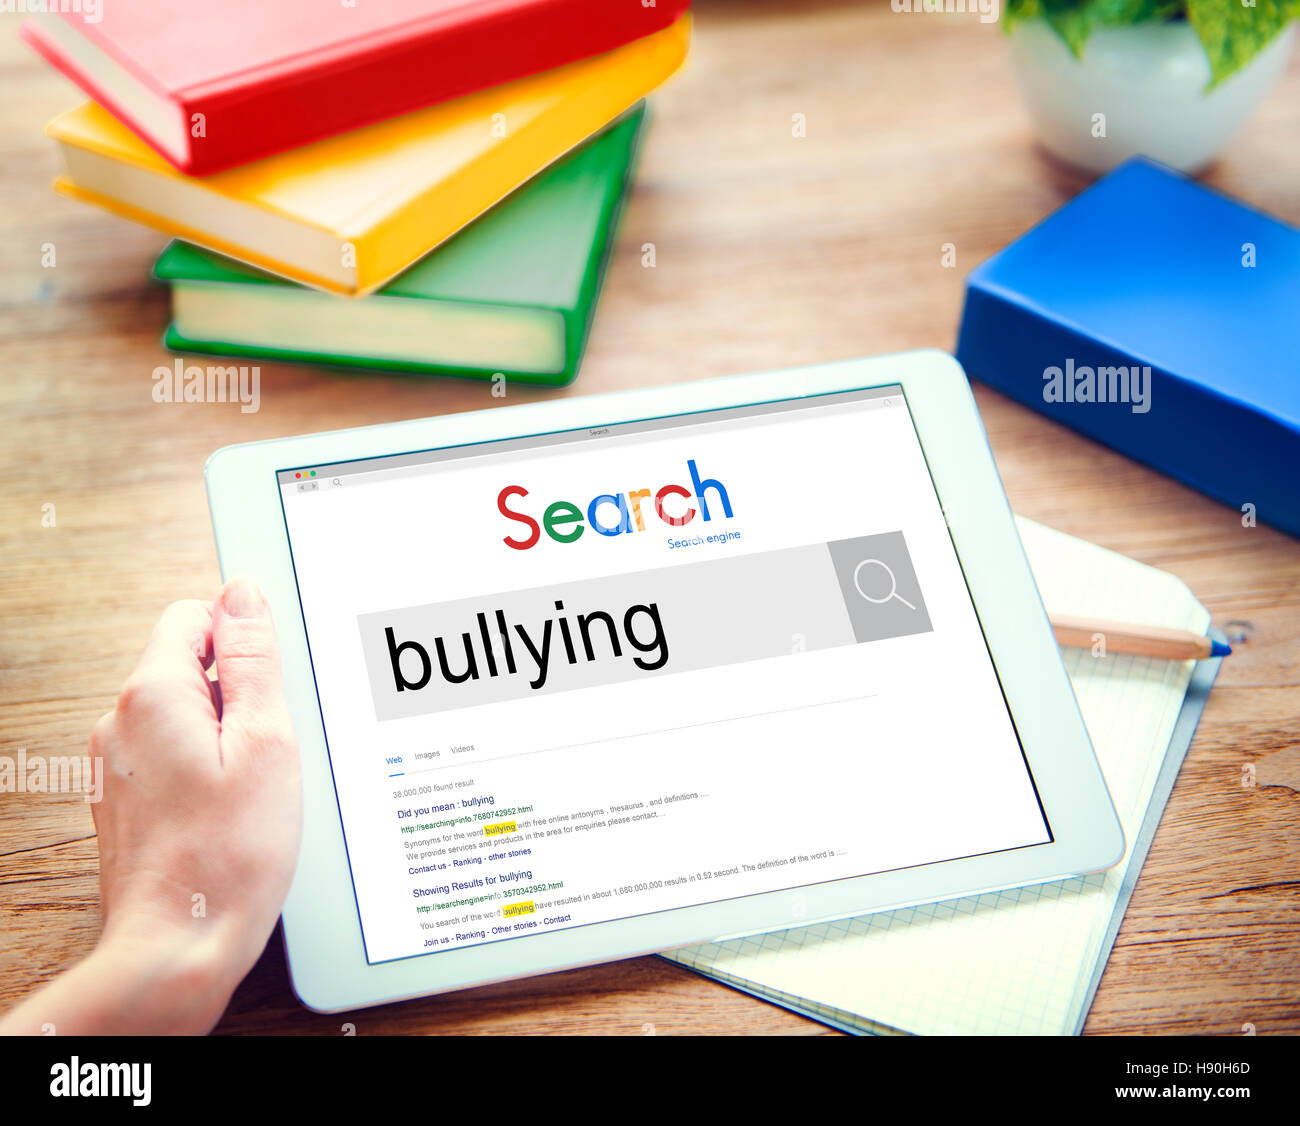 Bullying Force Totment Tyrannise Scare Oppression Concept - Stock Image